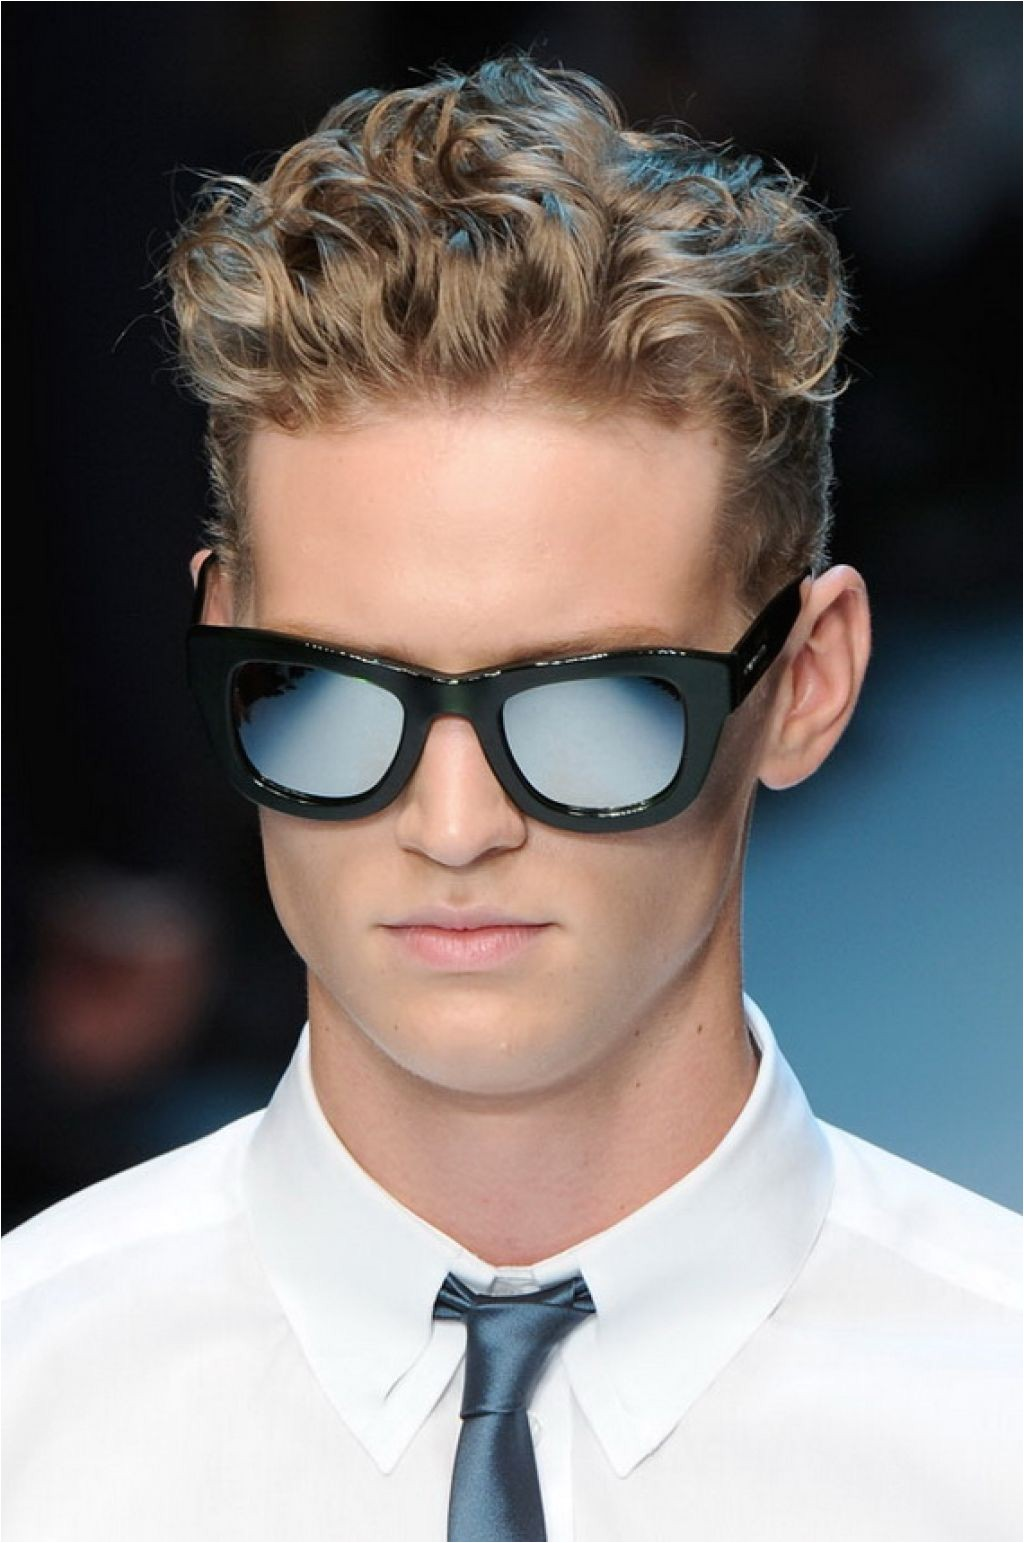 Hairstyles for Thick Curly Hair Men Men Hairstyles Thick Curly Hair with Glass